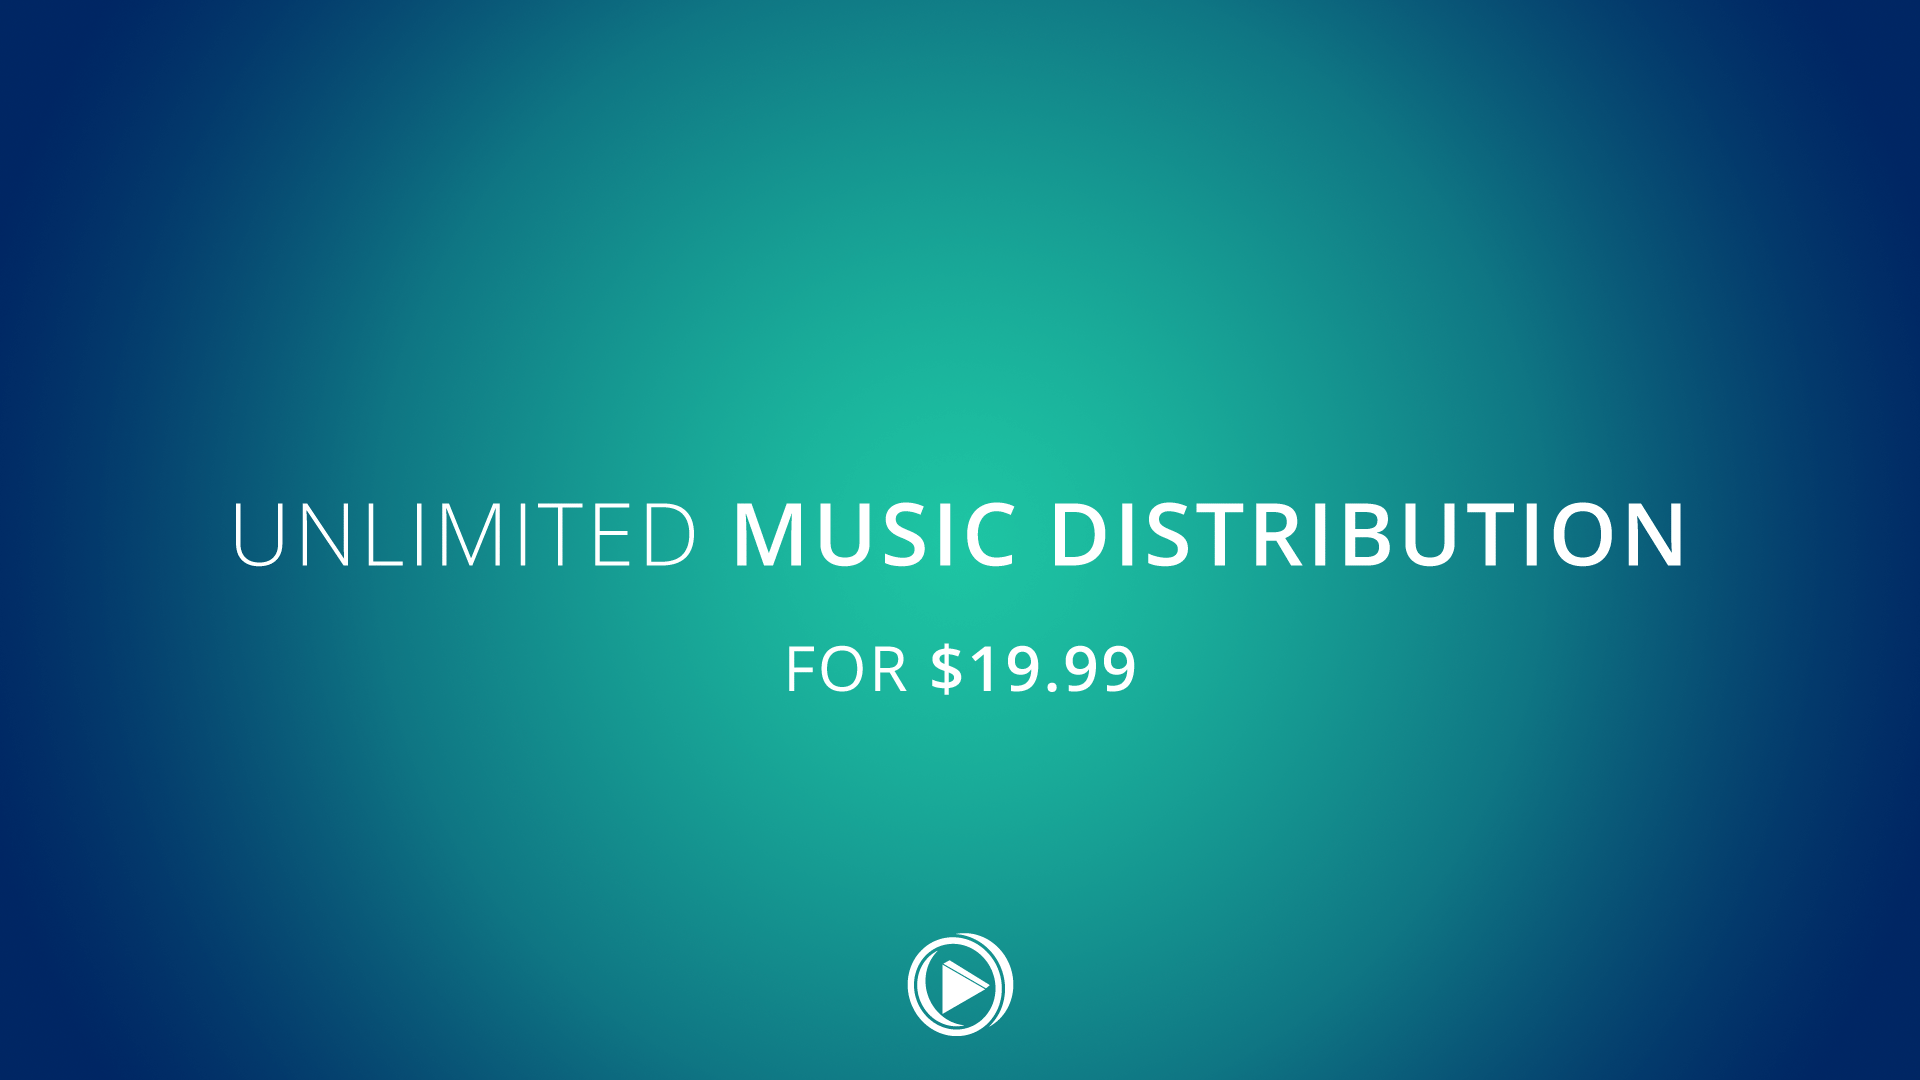 Unlimited Music Distribution